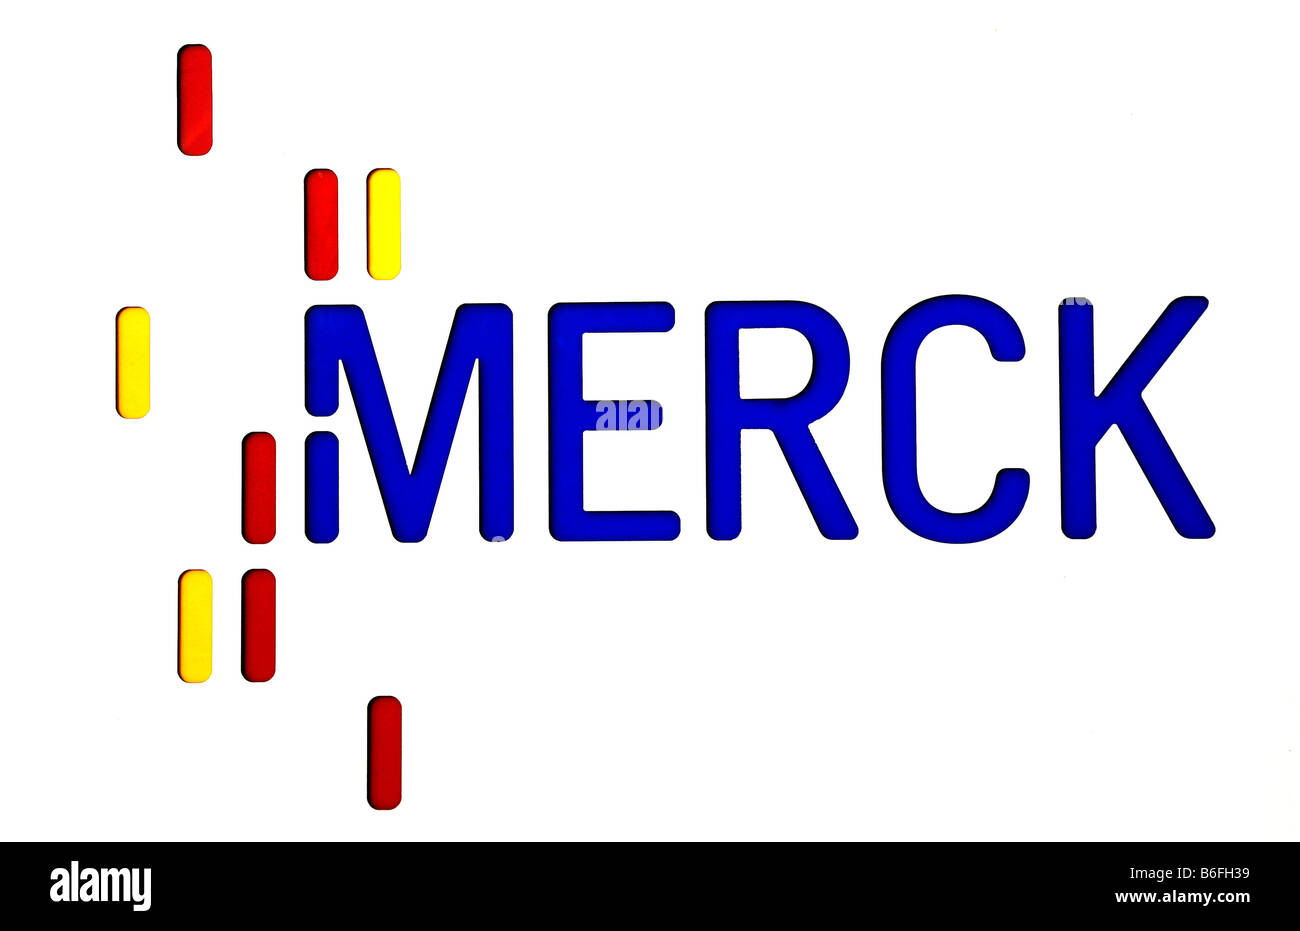 Merck Logo Stock Photos Merck Logo Stock Images Alamy